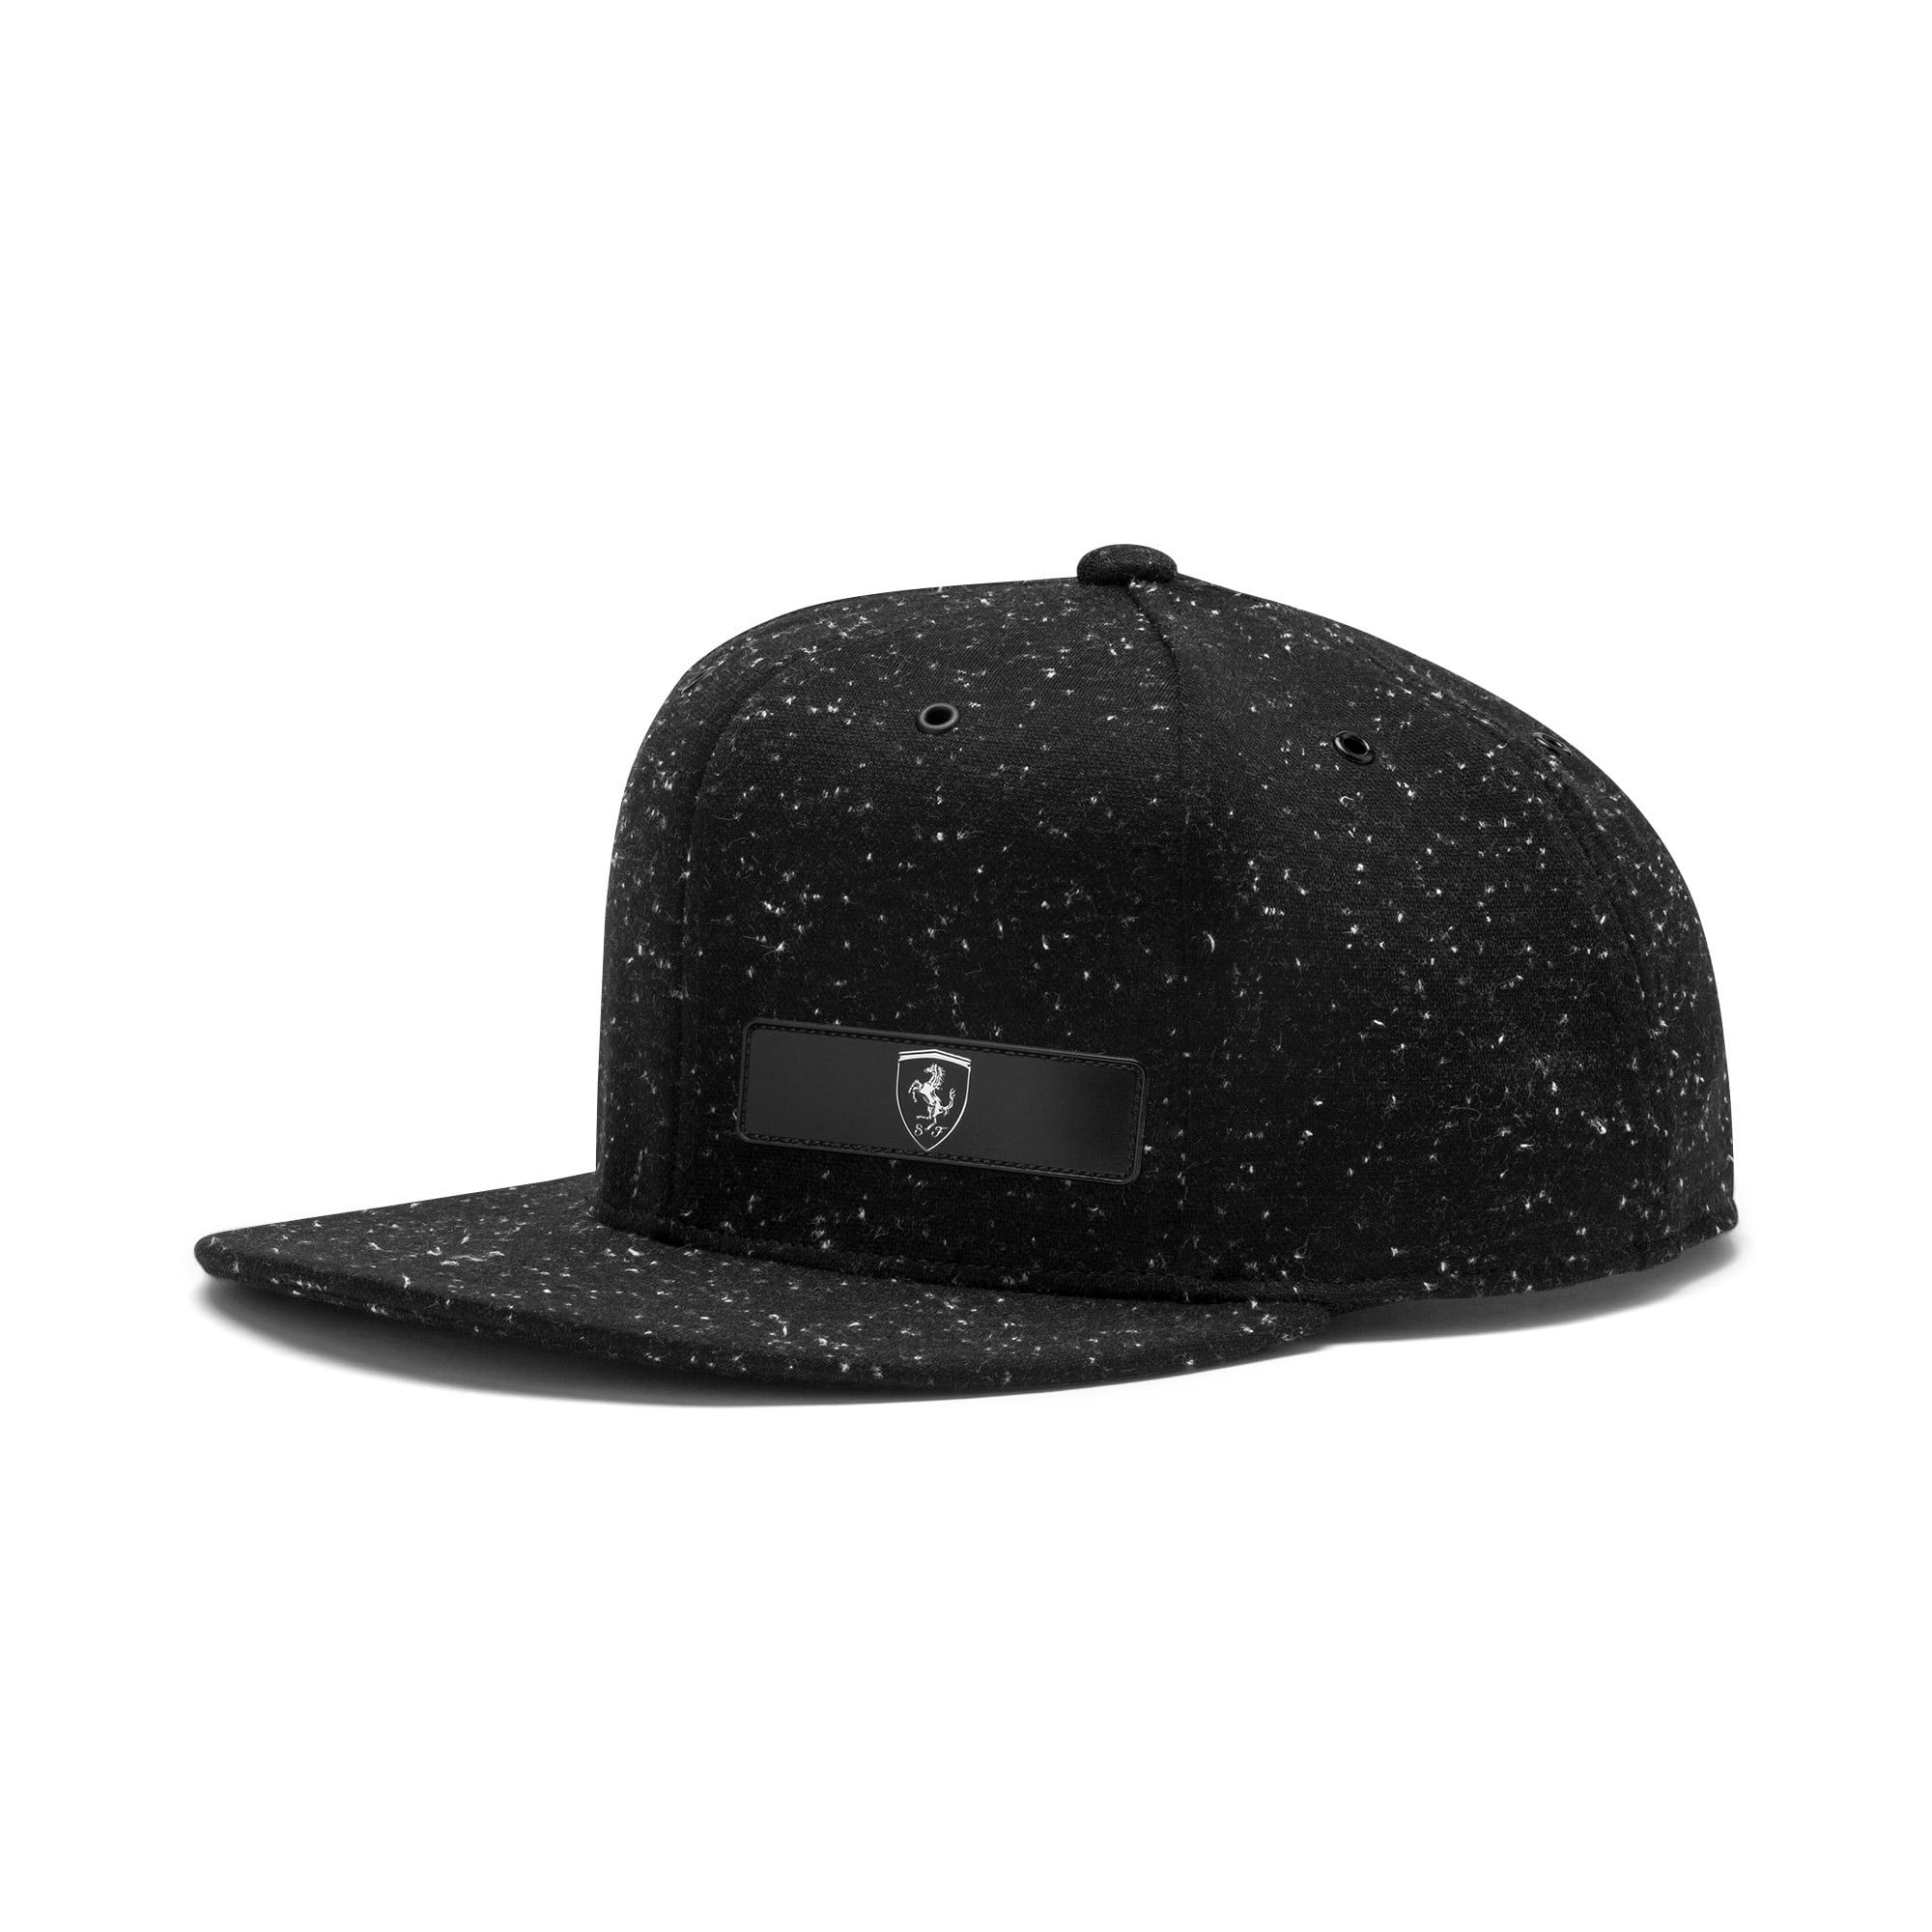 Thumbnail 1 of Ferrari Lifestyle Flat Brim Cap, Puma Black, medium-IND